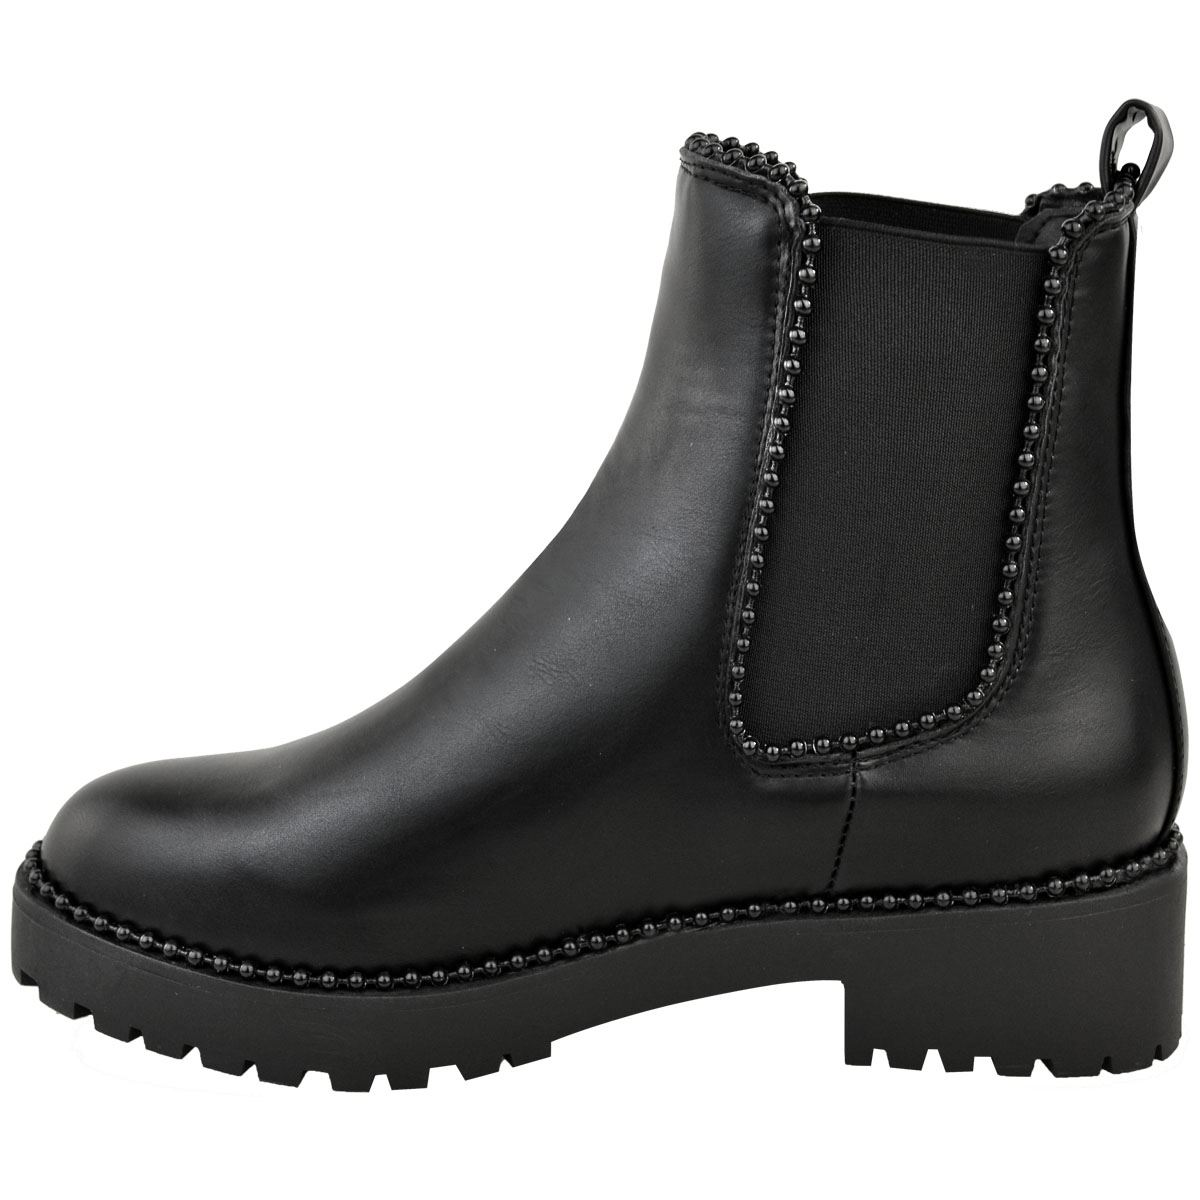 Womens-Ladies-Black-Faux-Leather-Ankle-Boots-Studded-Low-Block-Heel-Chelsea